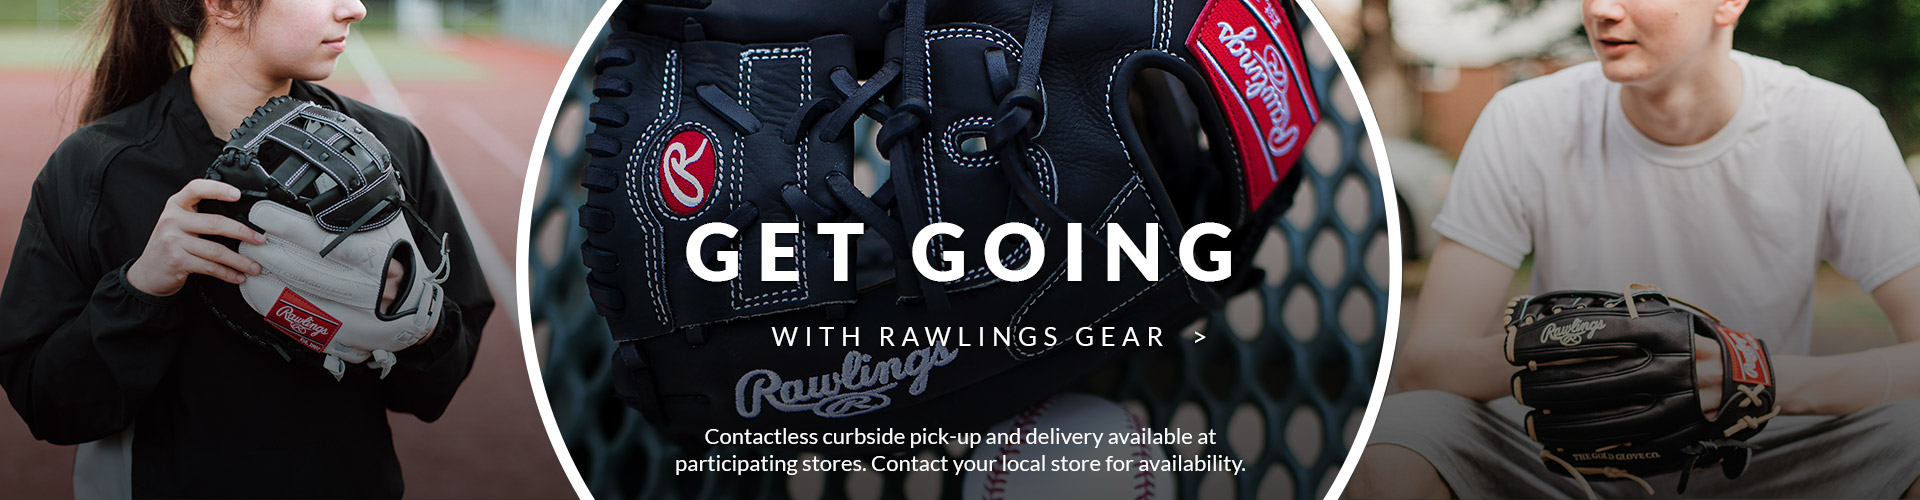 From Beginner To Pro, Shop Our Wide Selection Of Rawlings Baseball & Softball Gloves, Bats, Helmets, Catcher's Gear & More Like The R9 Baseball Gloves Available For Sale At Source For Sports Stores Near You. Shop Online Or Reserve & Pick Up In Store.